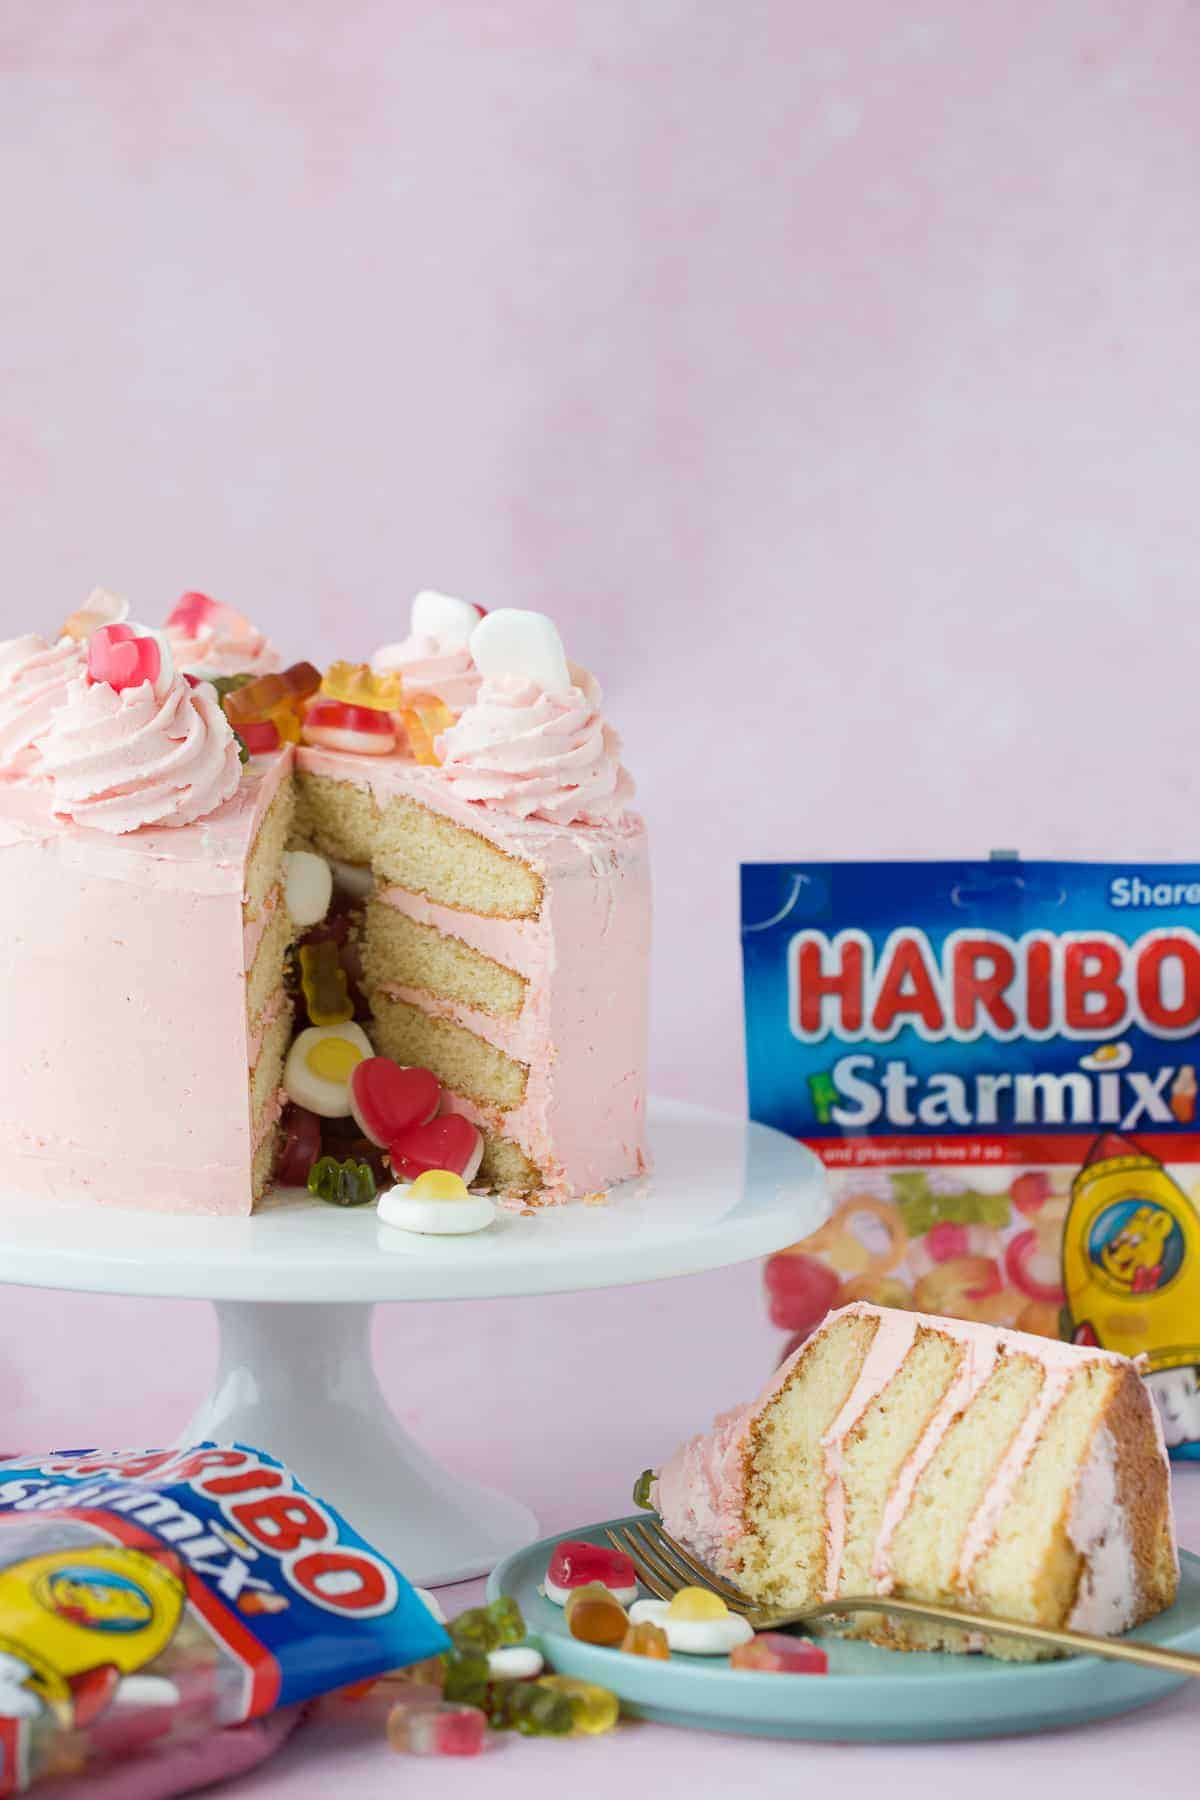 A layer cake on a pink platter with a slice cut out from it and a bag of HARIBO sweets in the background.